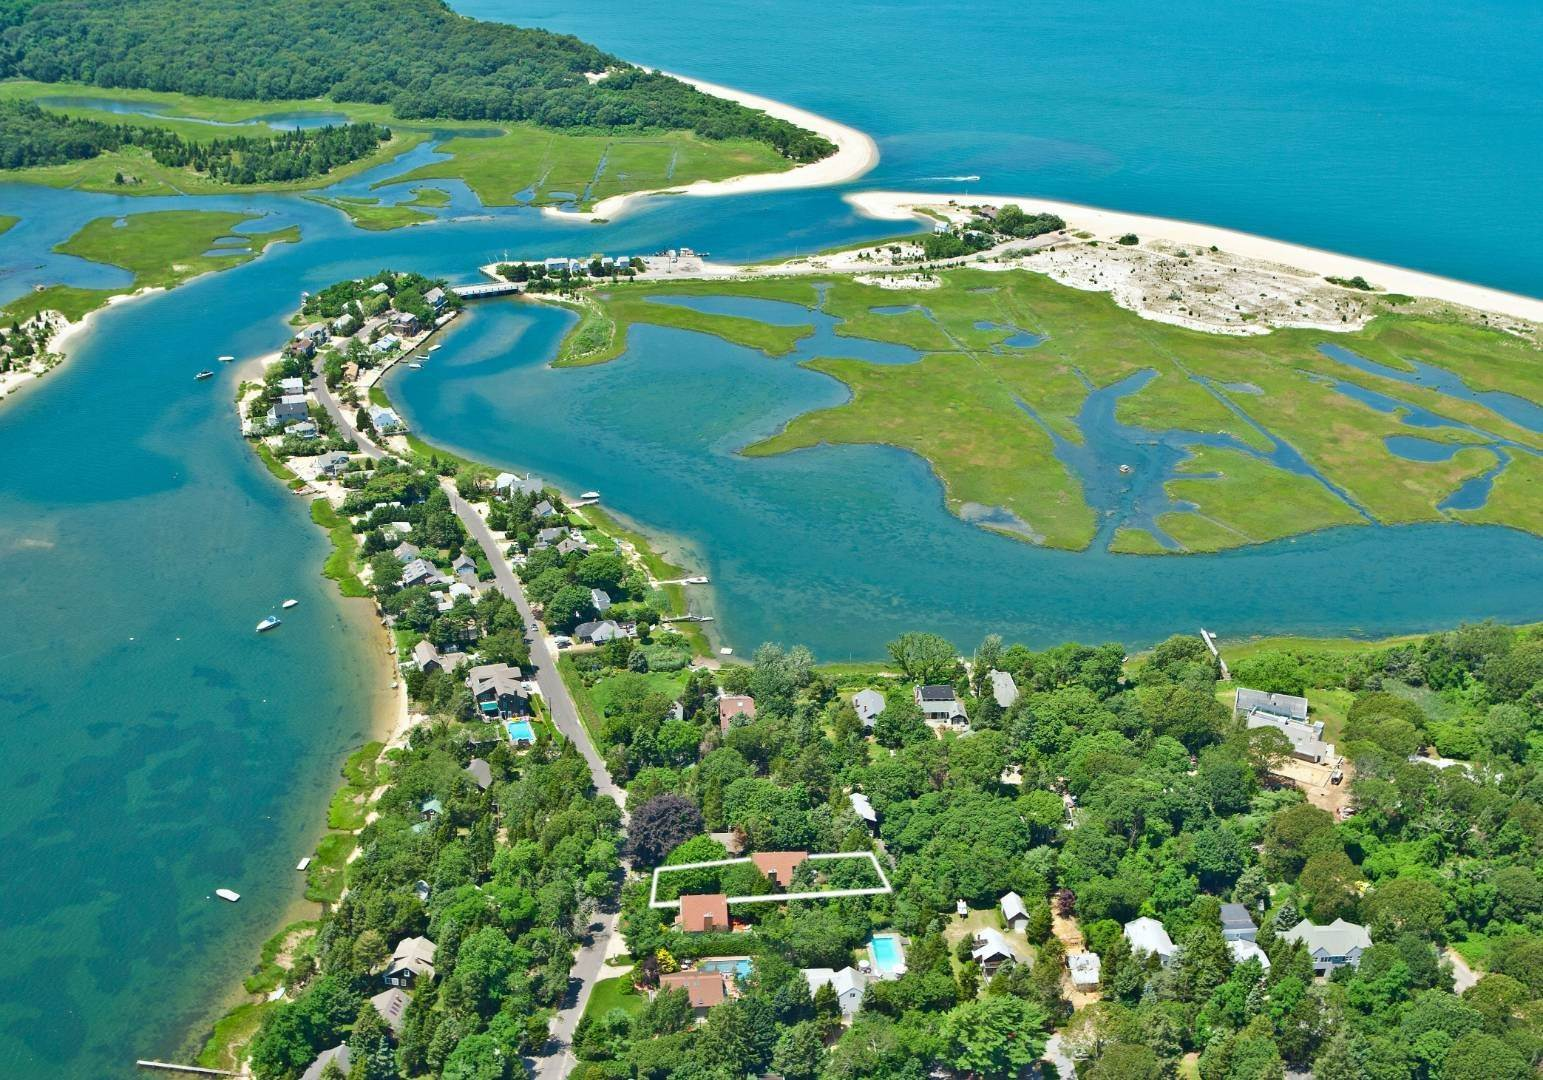 Single Family Home for Sale at Desirable Towd Point Beach Front Community With Room For Pool 145 Towd Point Road, Southampton, NY 11968